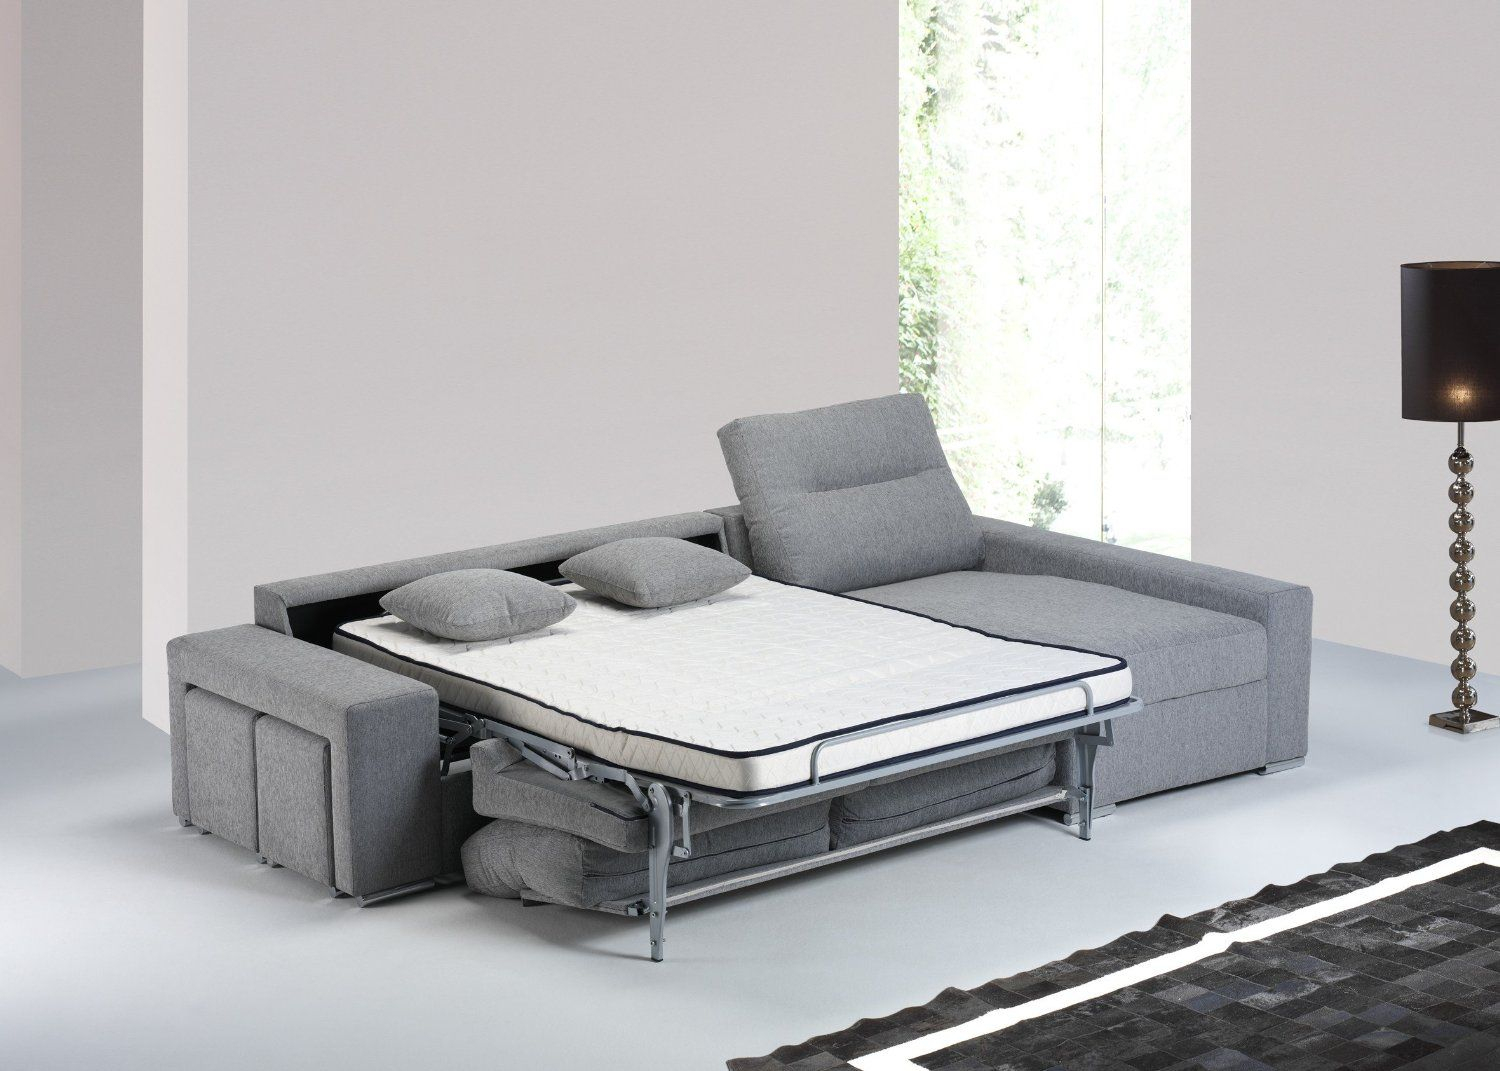 Canapé Convertible D'angle Conde, Couchage Quotidien 140*190 ... avec Canape Lit Convertible Couchage Quotidien